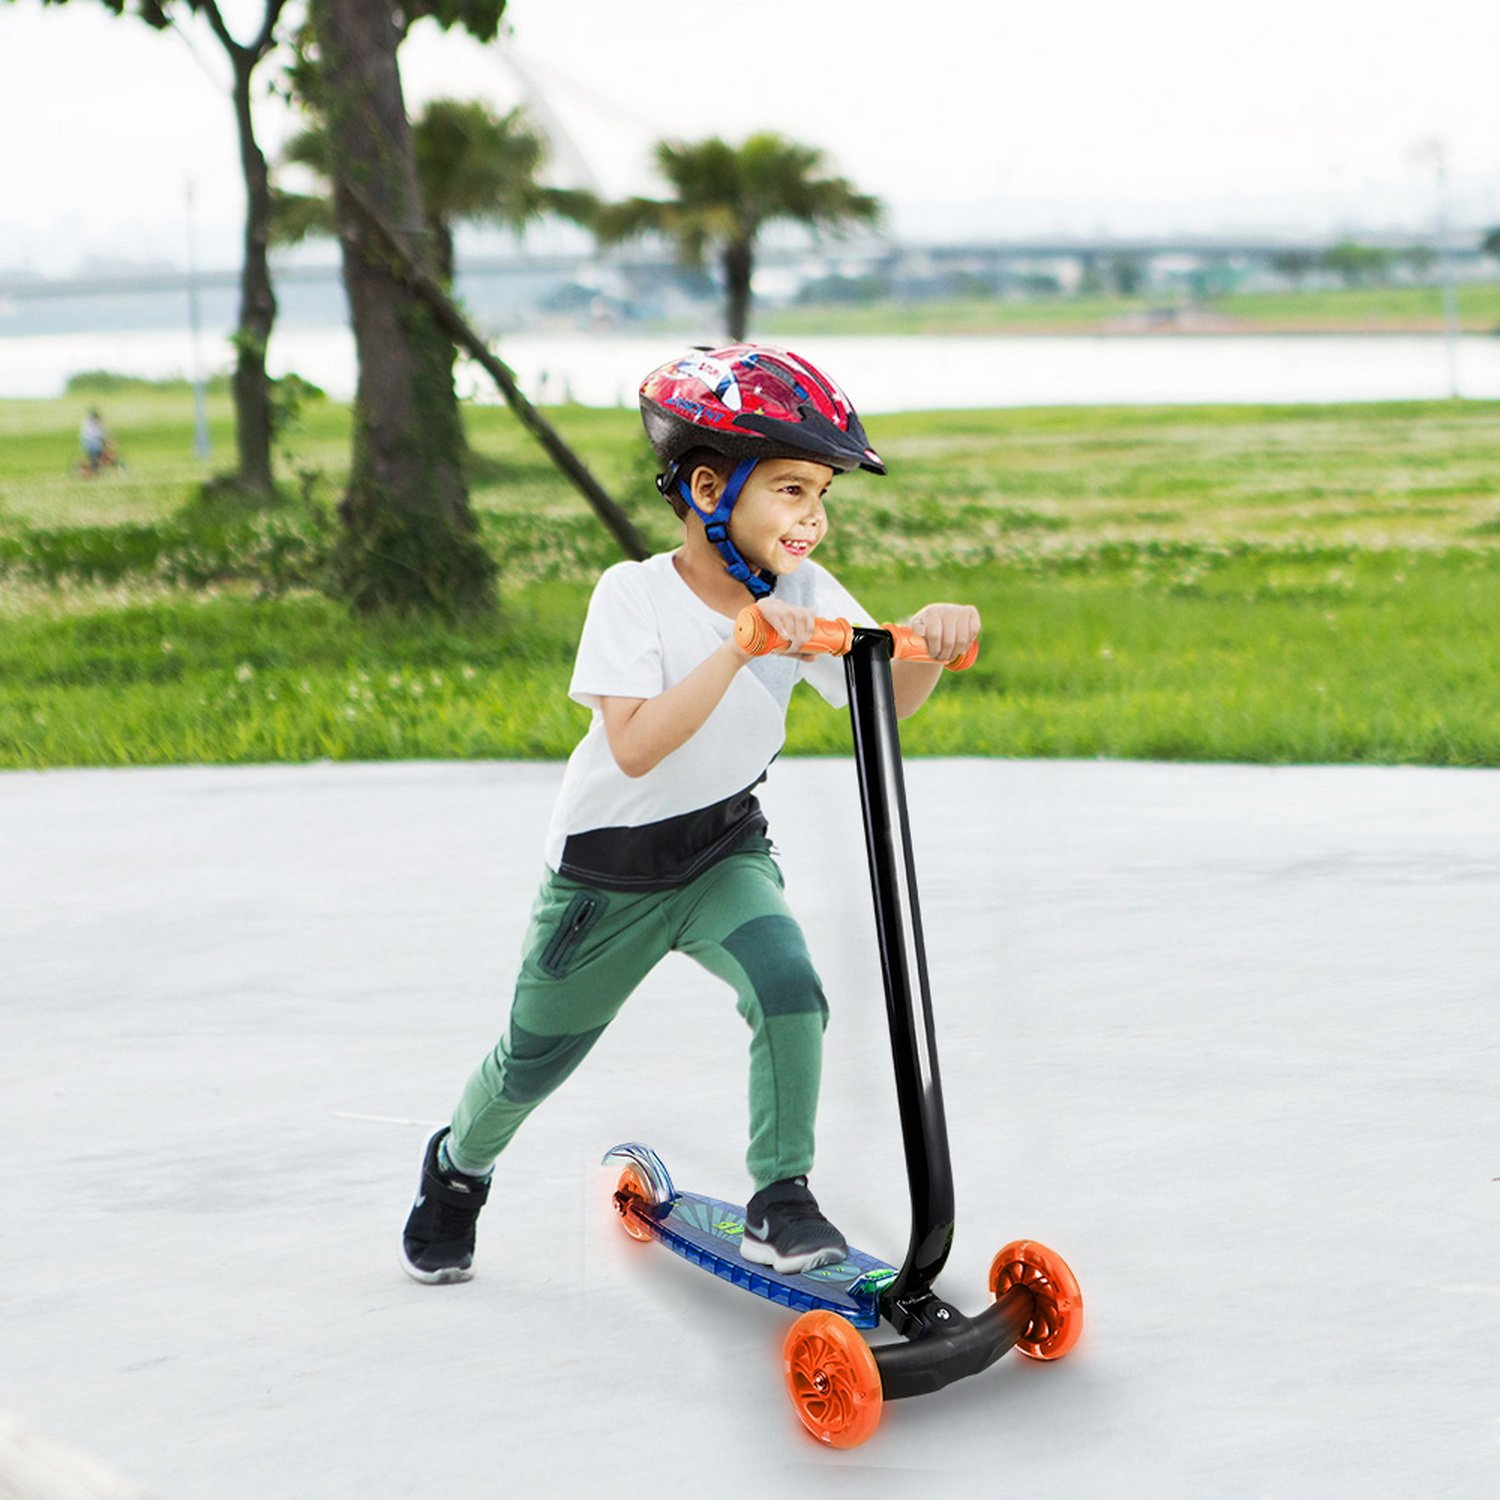 Amazon.com : Child Kids 3-Wheel Kick Scooter with LED Light Up Wheels and Music Manual T-bar Scooters (Style1 - Blue) : Sports & Outdoors